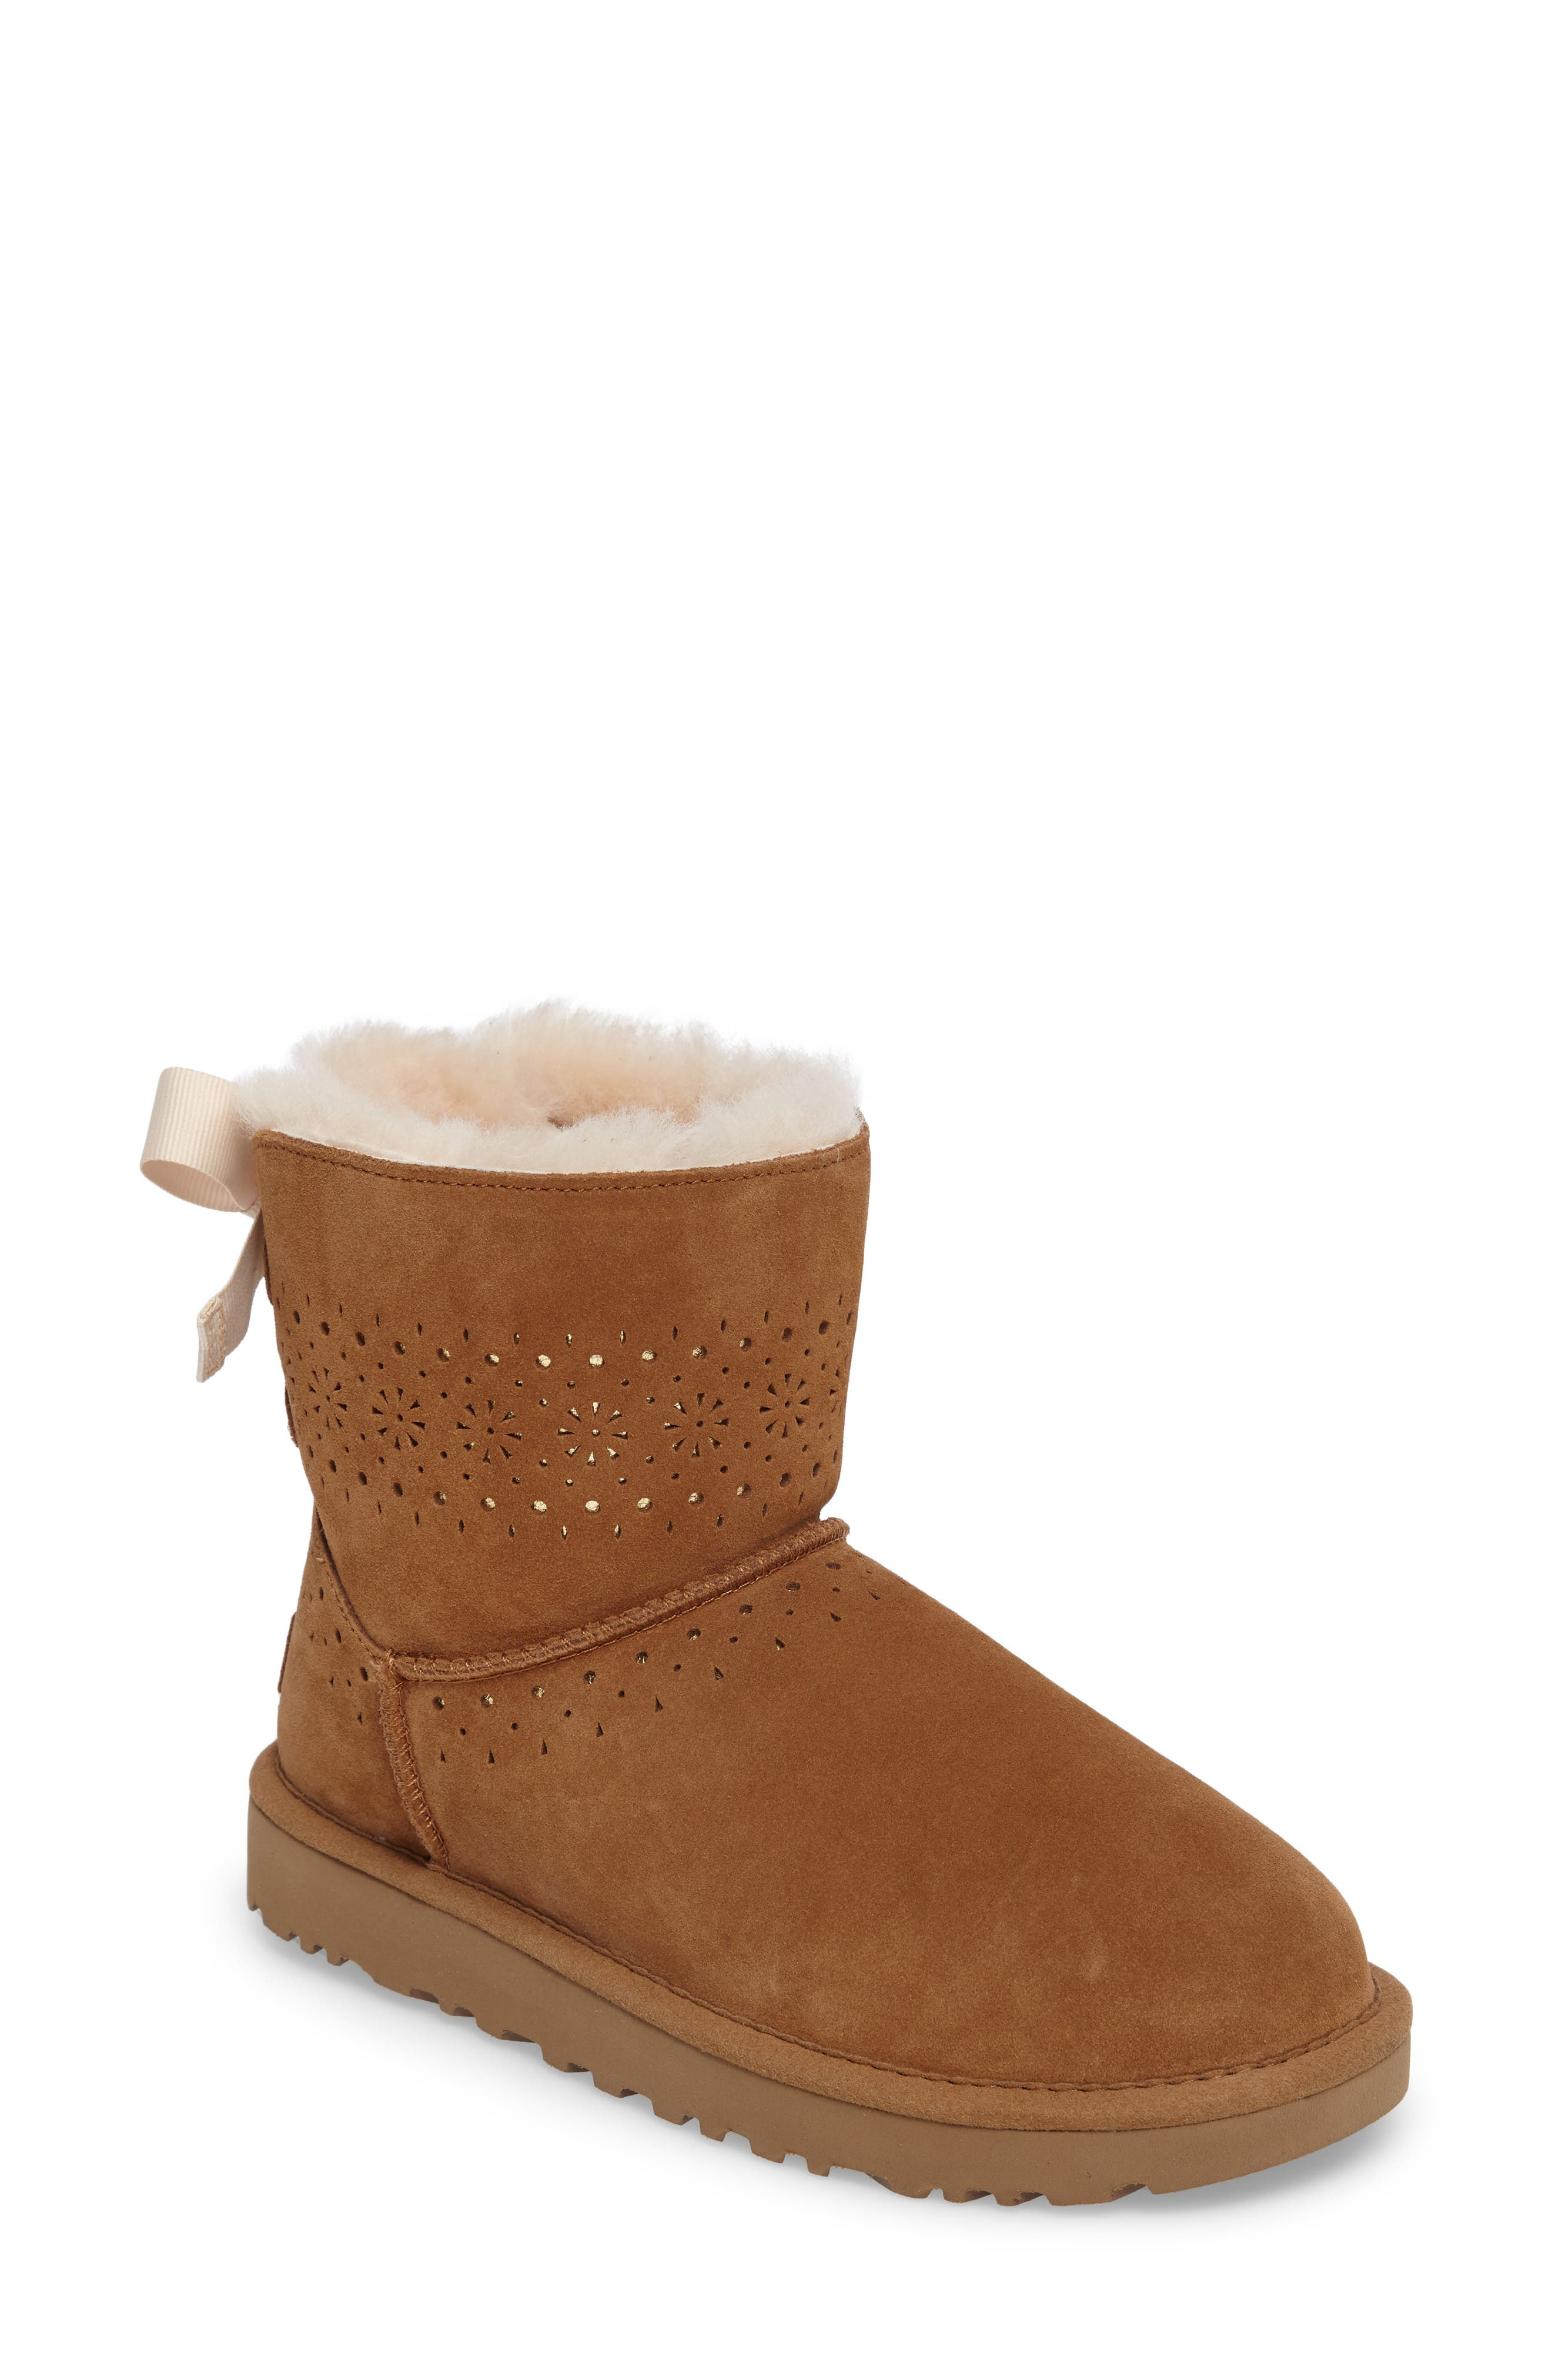 Alternate Image 1 Selected - UGG® Dae Sunshine Boot (Women)